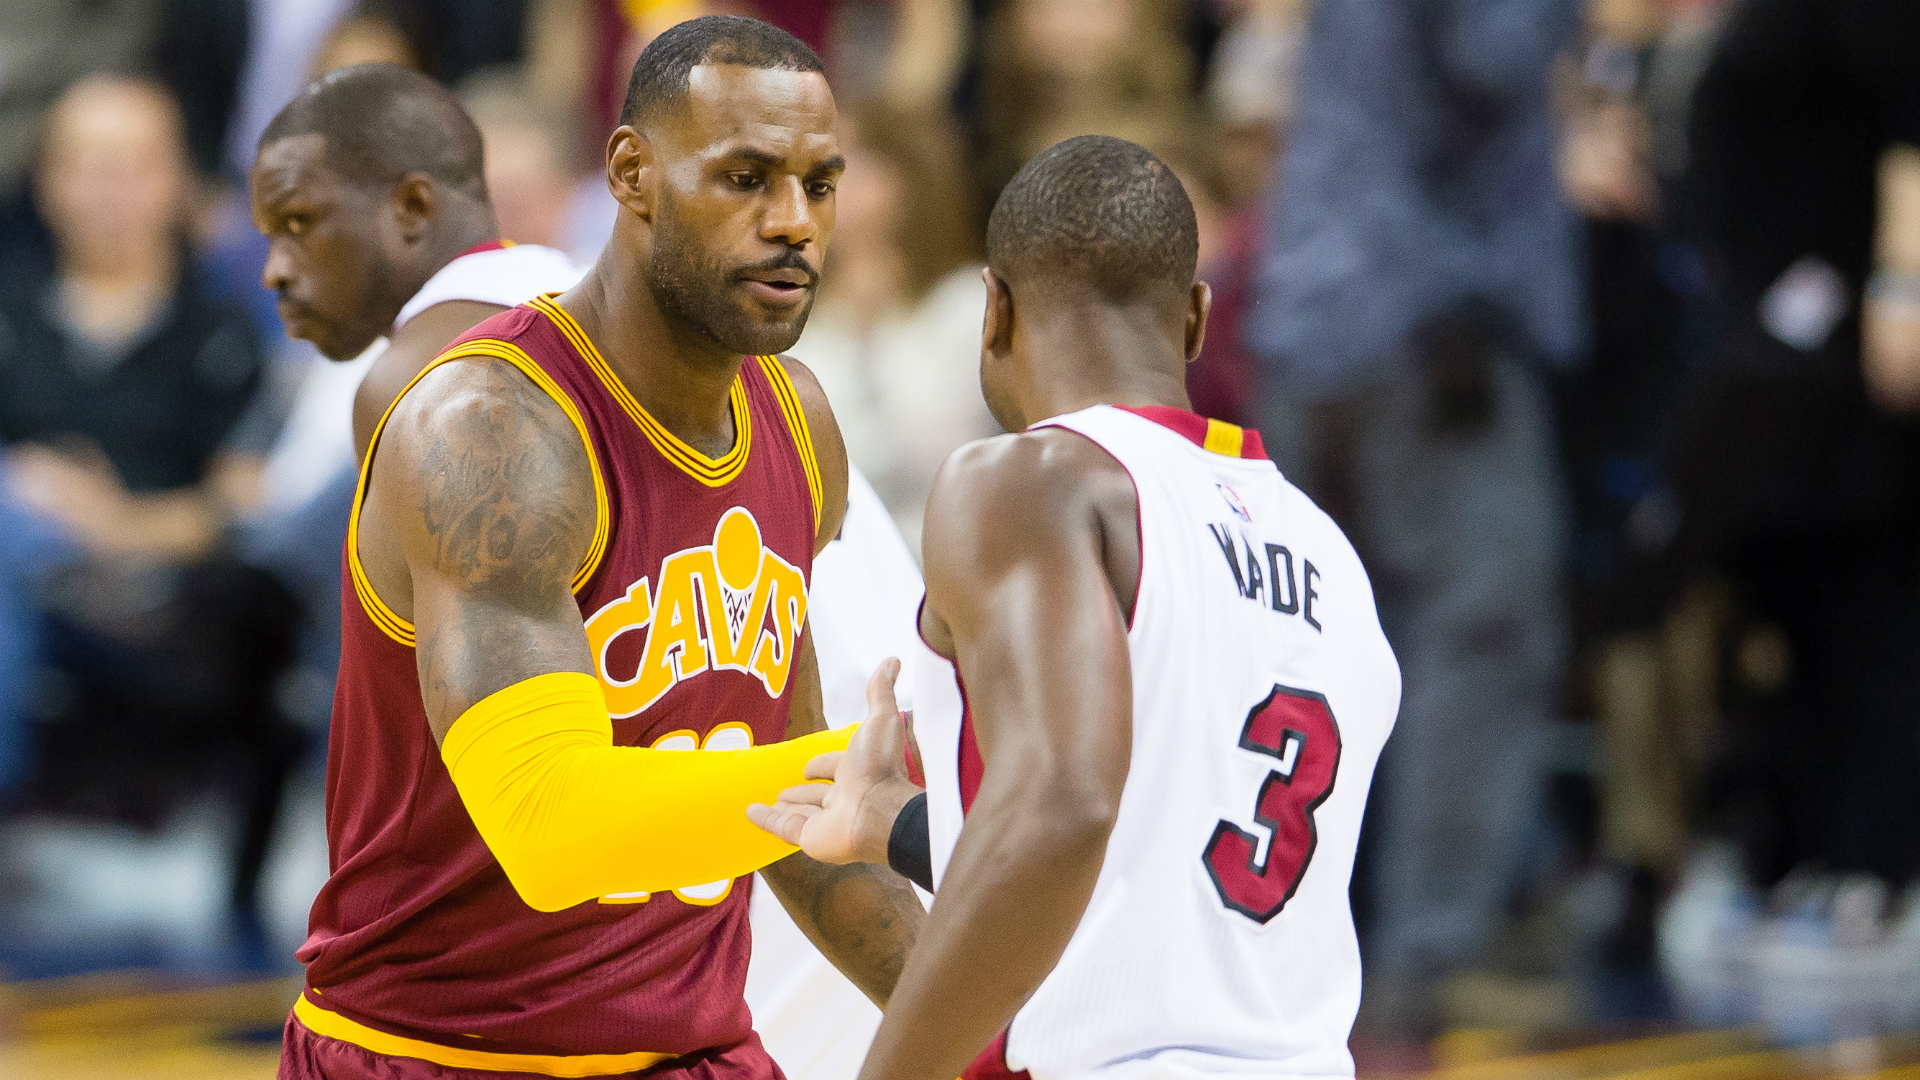 Di did lebron james become famous - Easier Said Than Done Jalen